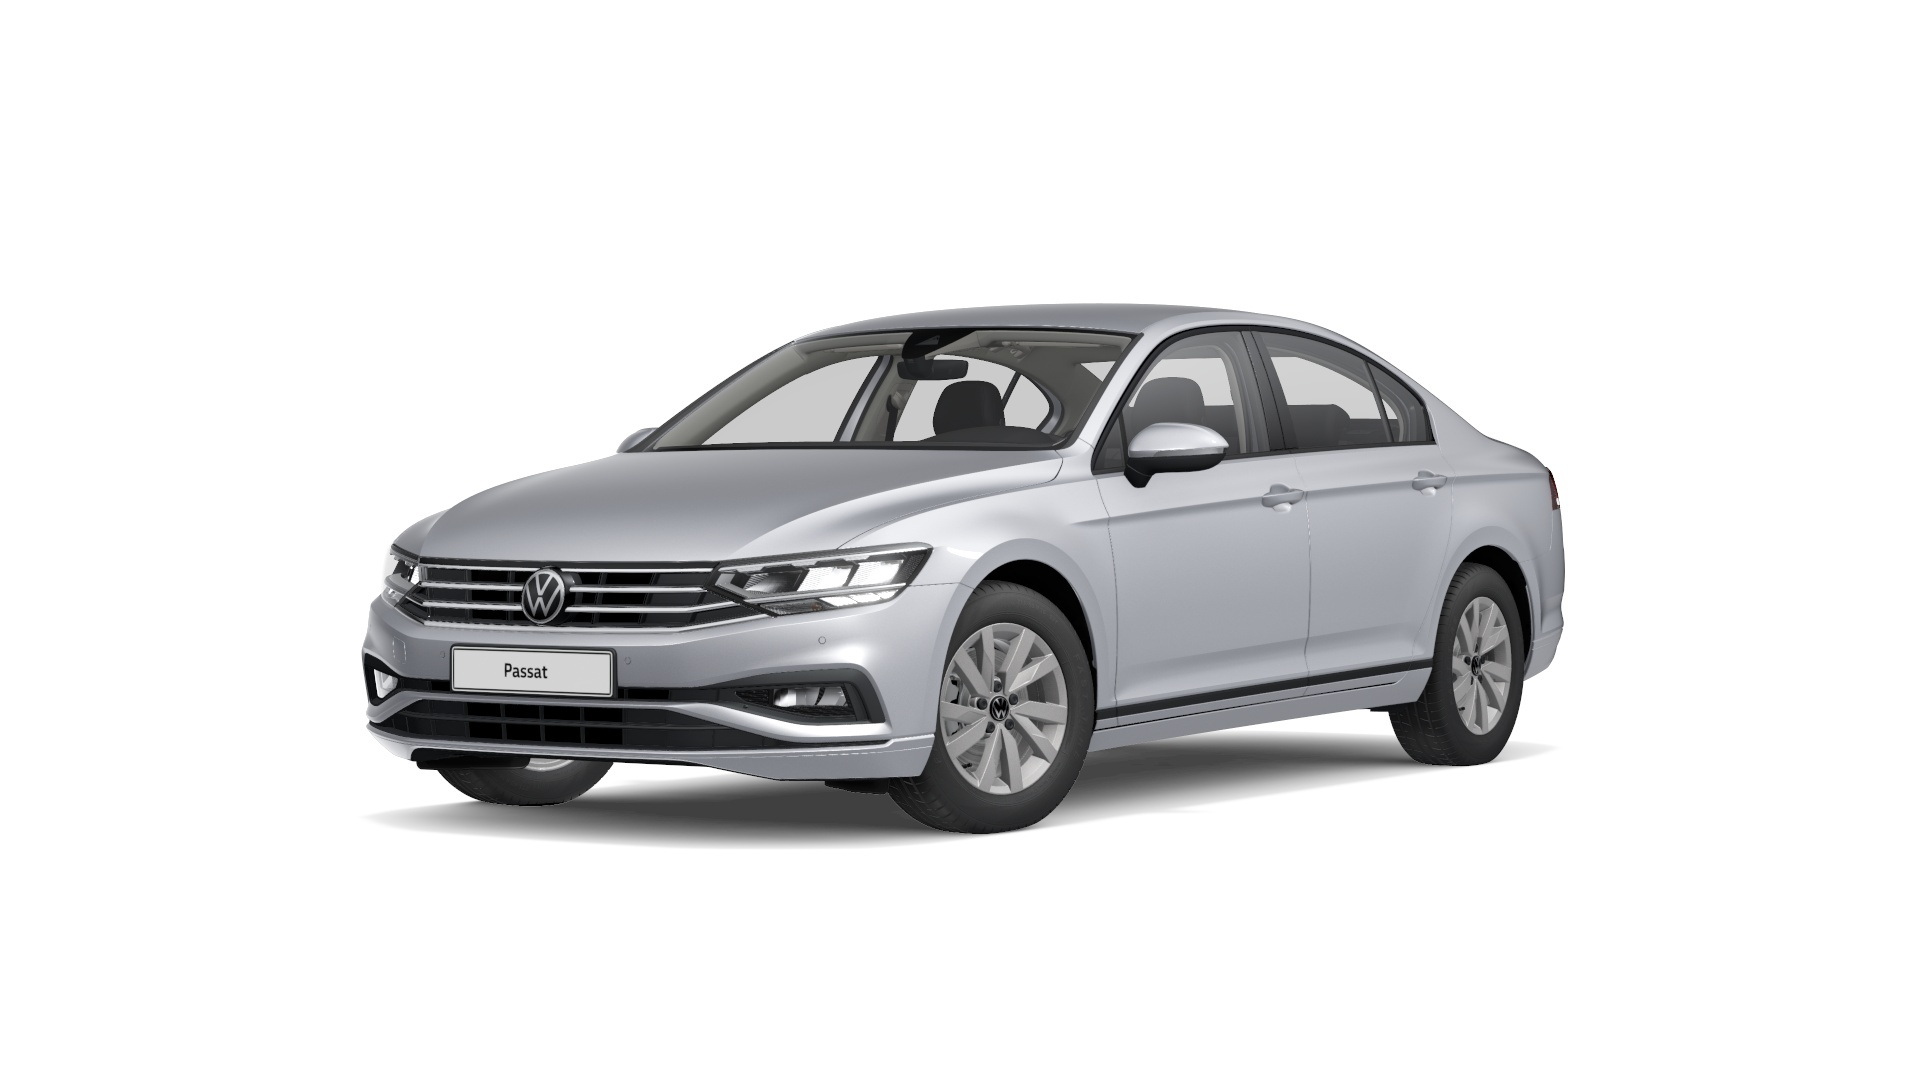 Noul Passat Advance 2.0 TDI DSG / 122 CP/90 kW / 2.0l / Direct Shift Gearbox / 4-usi : Volkswagen Passat Advance